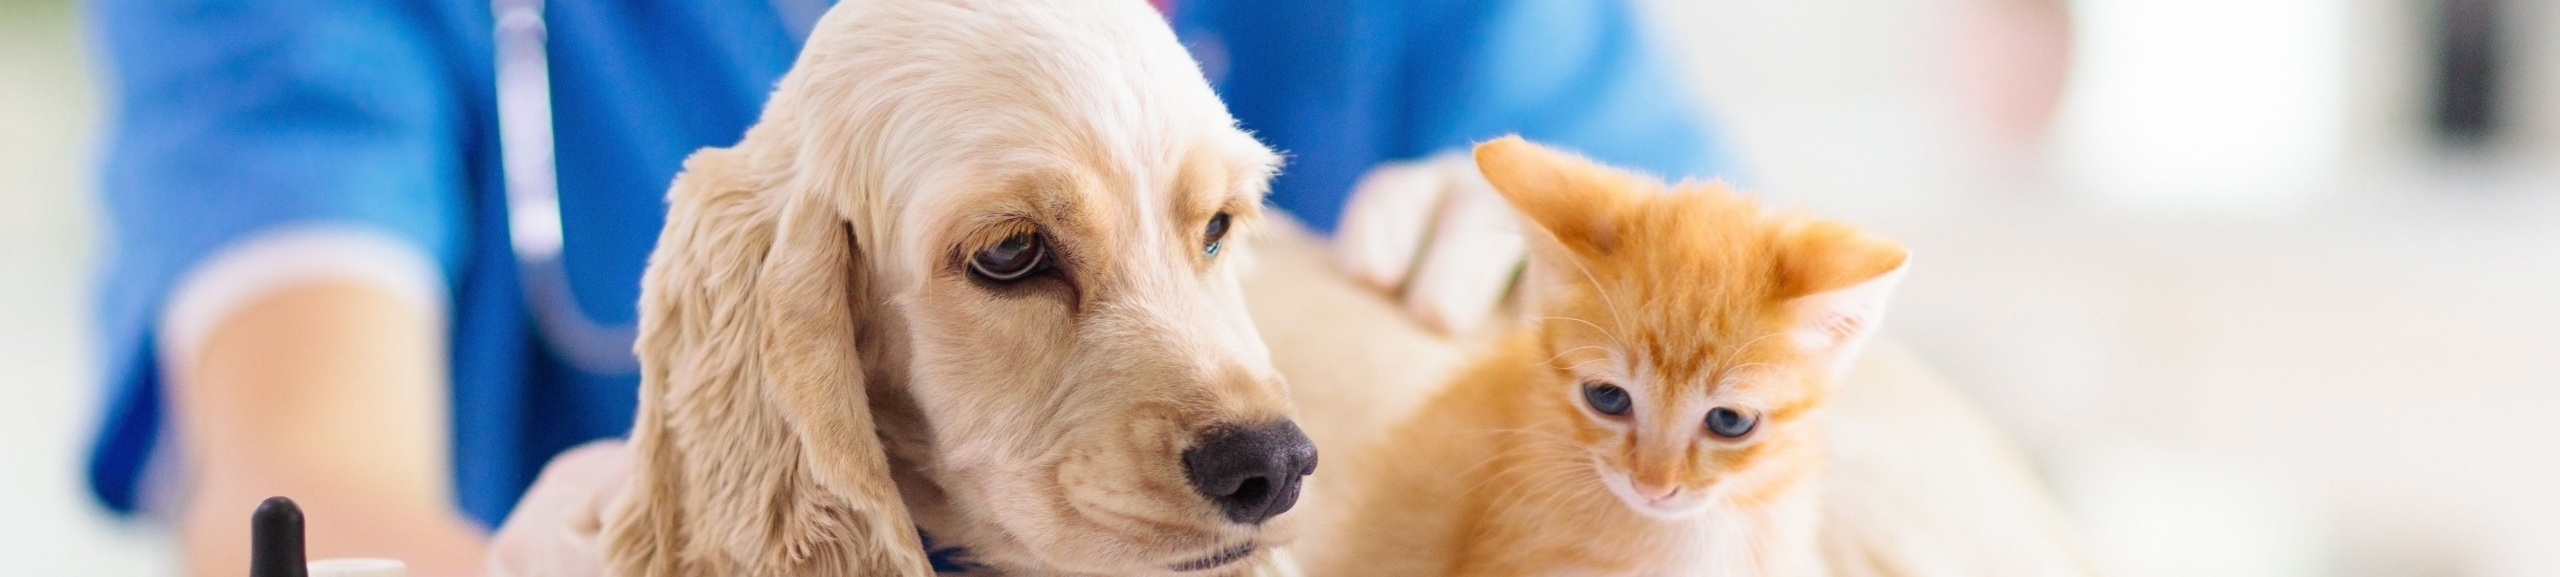 Controlled Substance Diversion in Veterinary Medicine